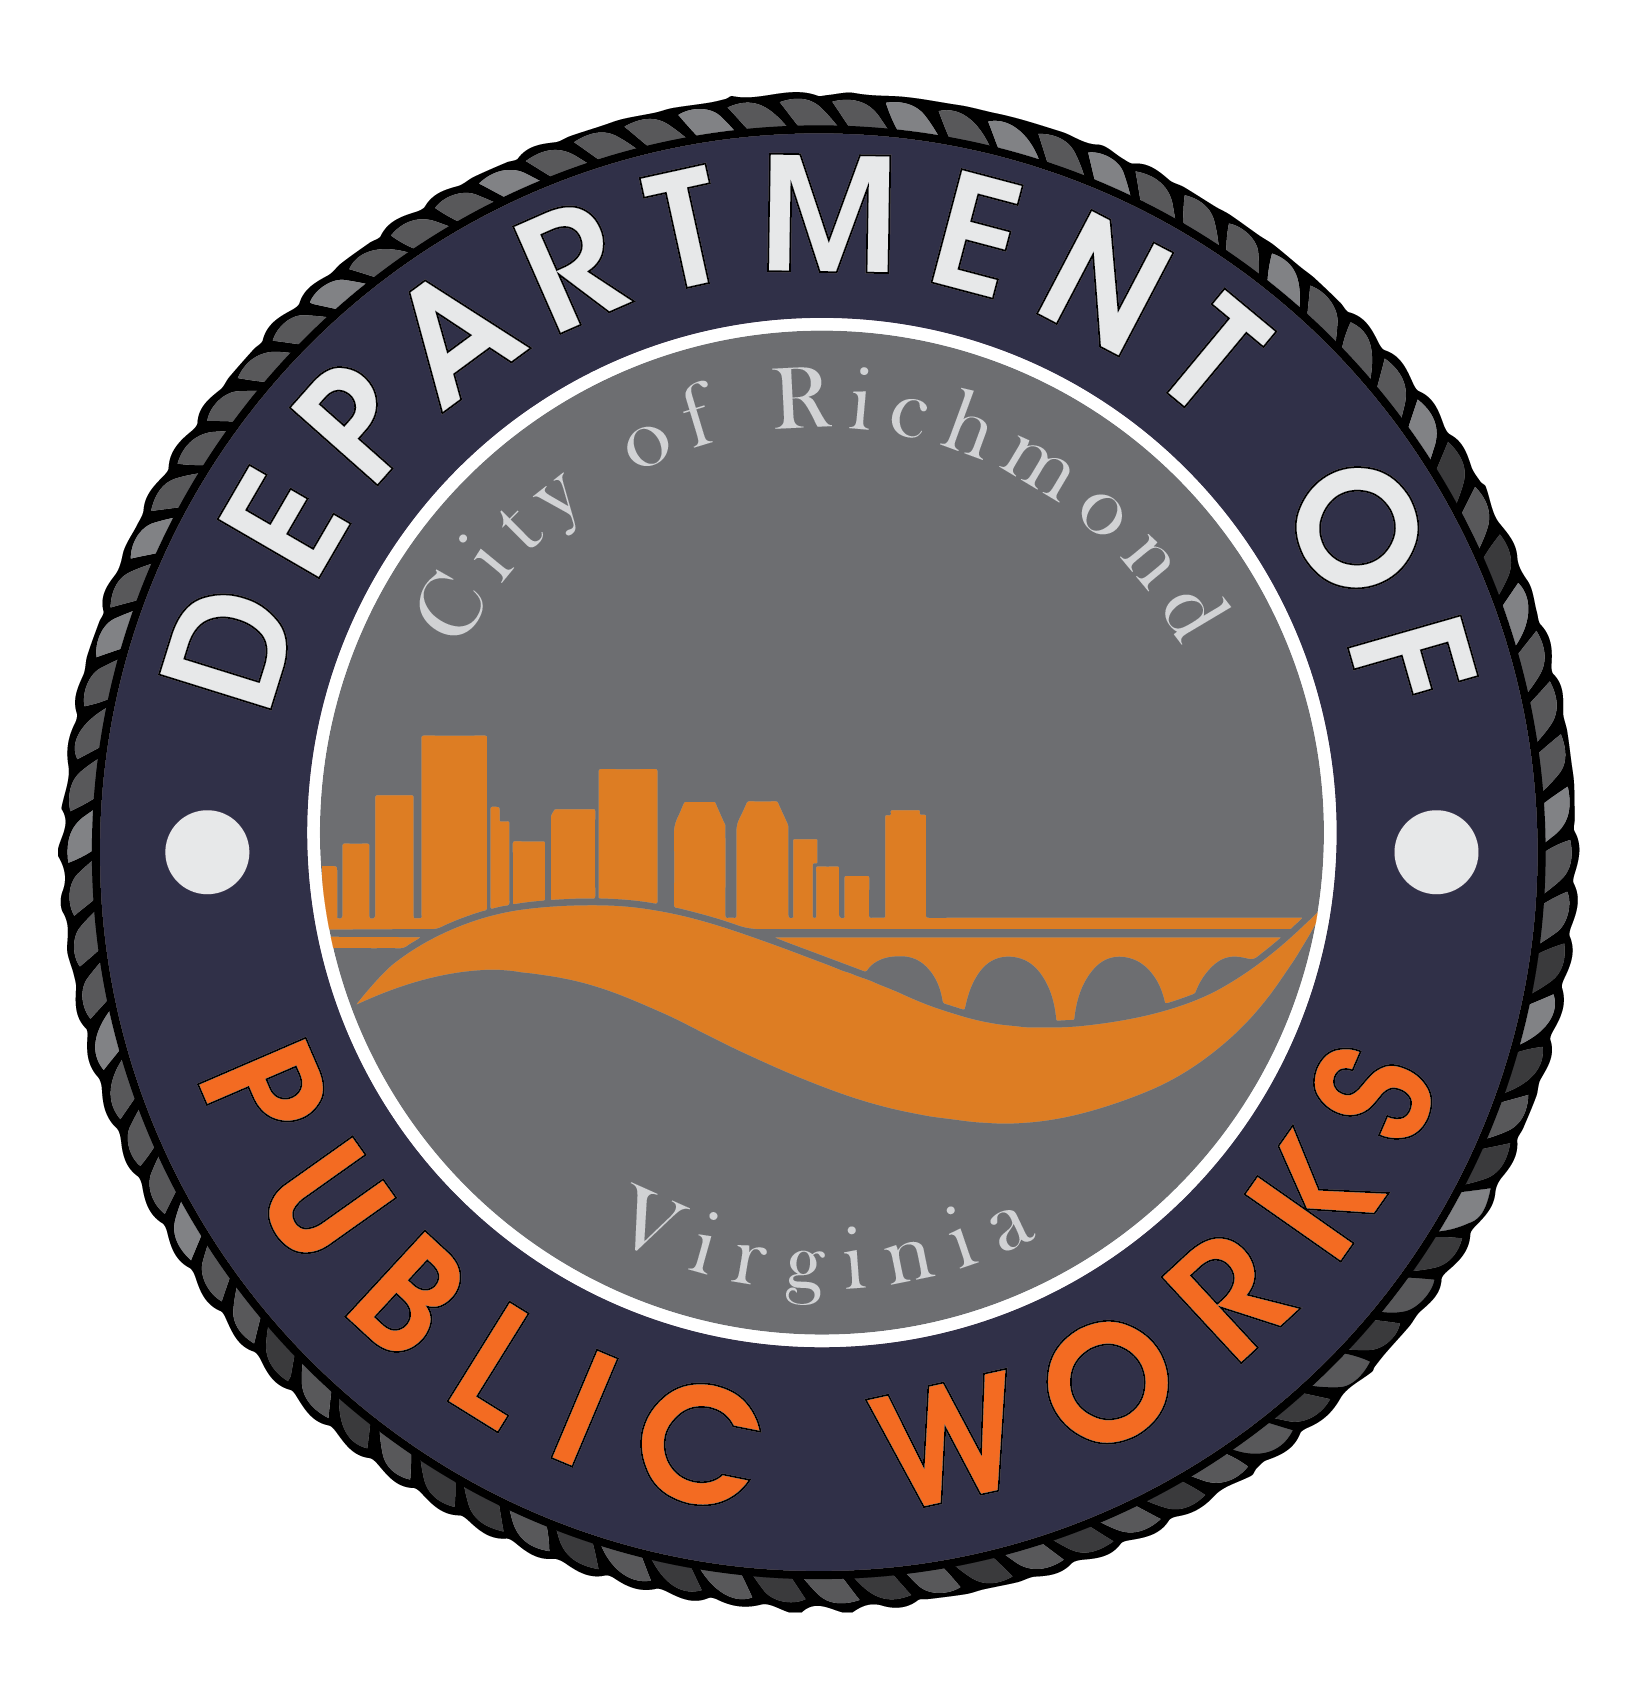 Department of works vacancies download free clipart with a.